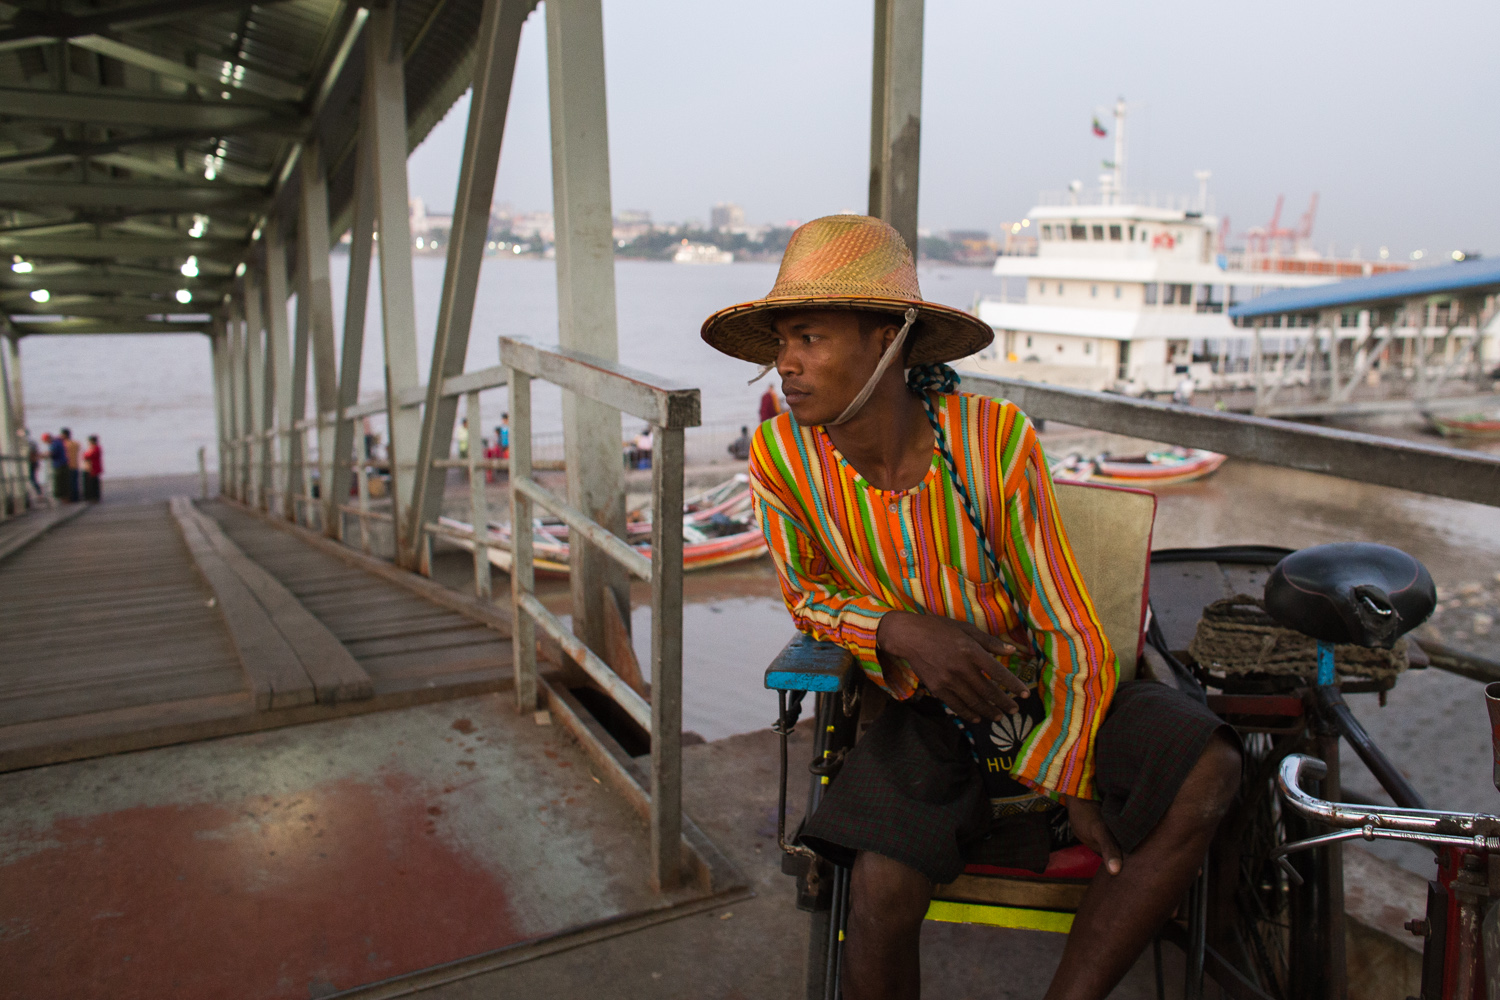 Only 15 minuts of ferry ride to reach Yangon